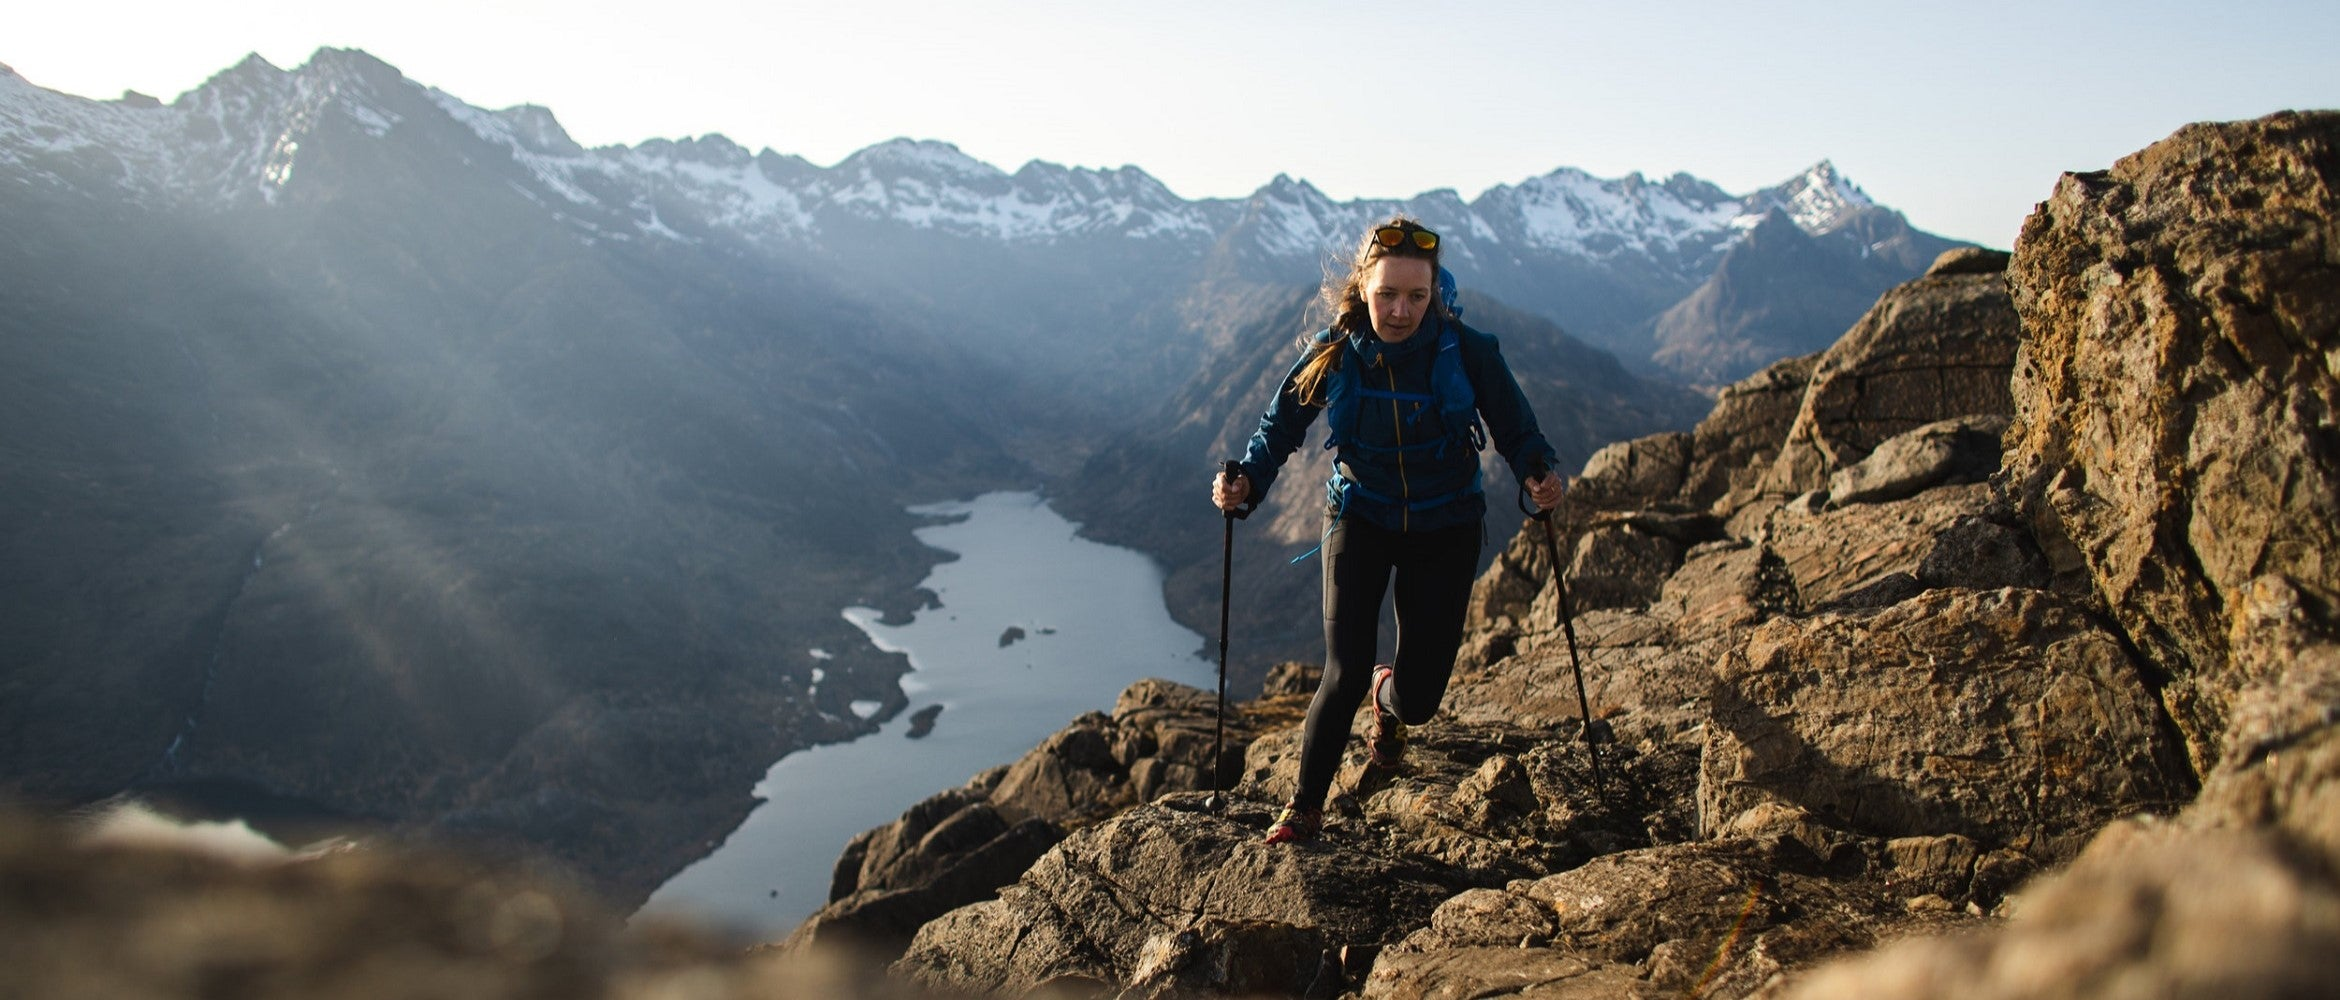 10 Adventurous Women to Follow on Instagram